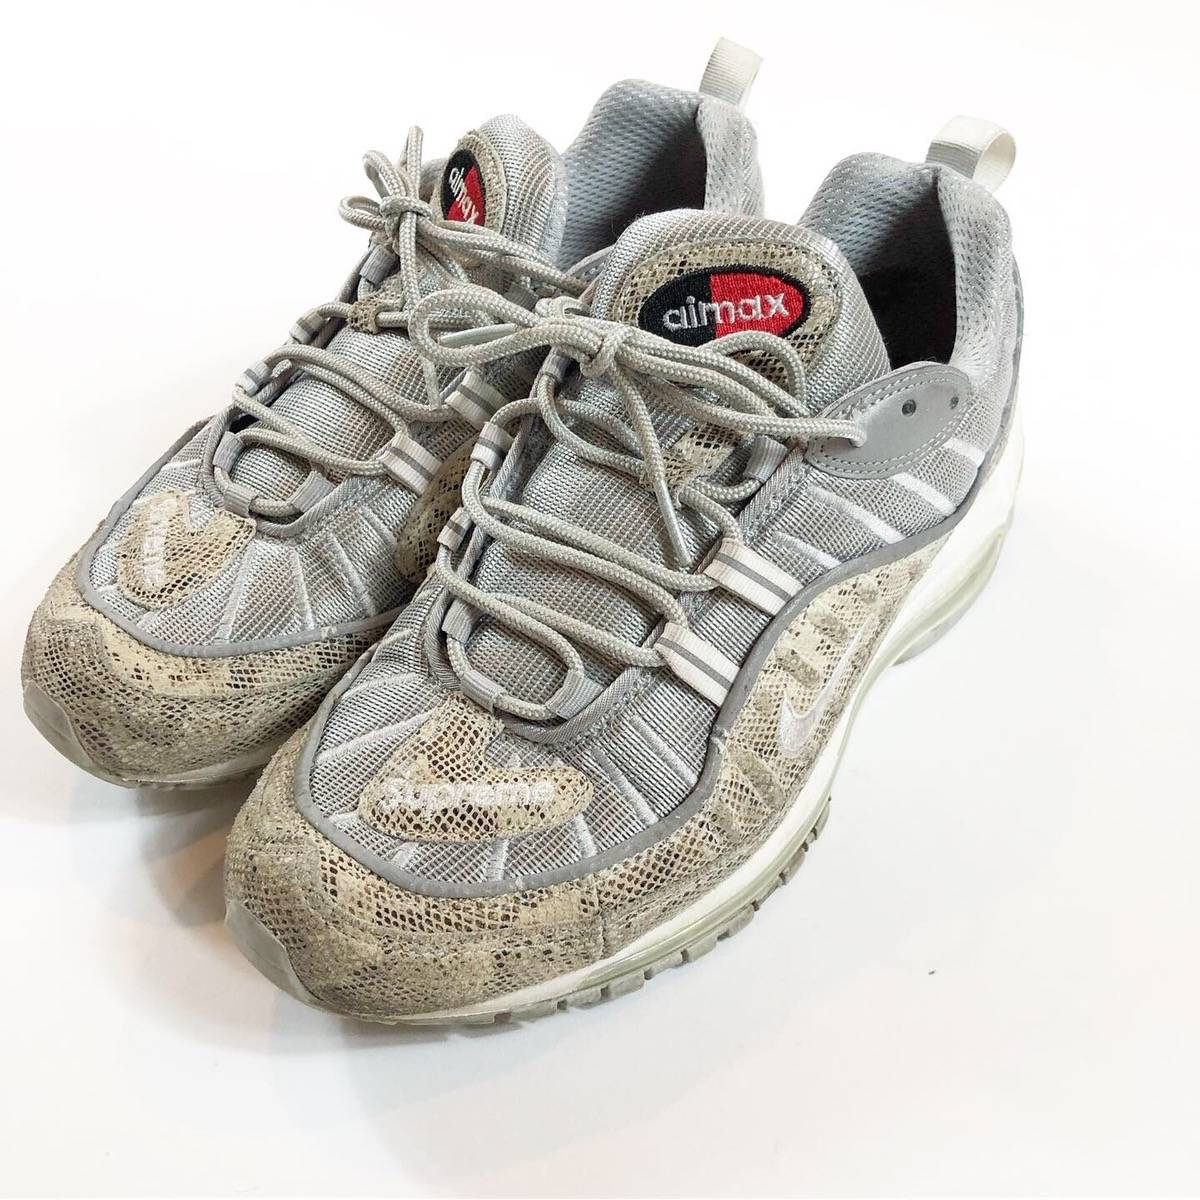 new product 4eefd 7172b Nike × Supreme Supreme Nike Air Max 98 Snakeskin Rare Sold Out Size 9 Size  9 $243